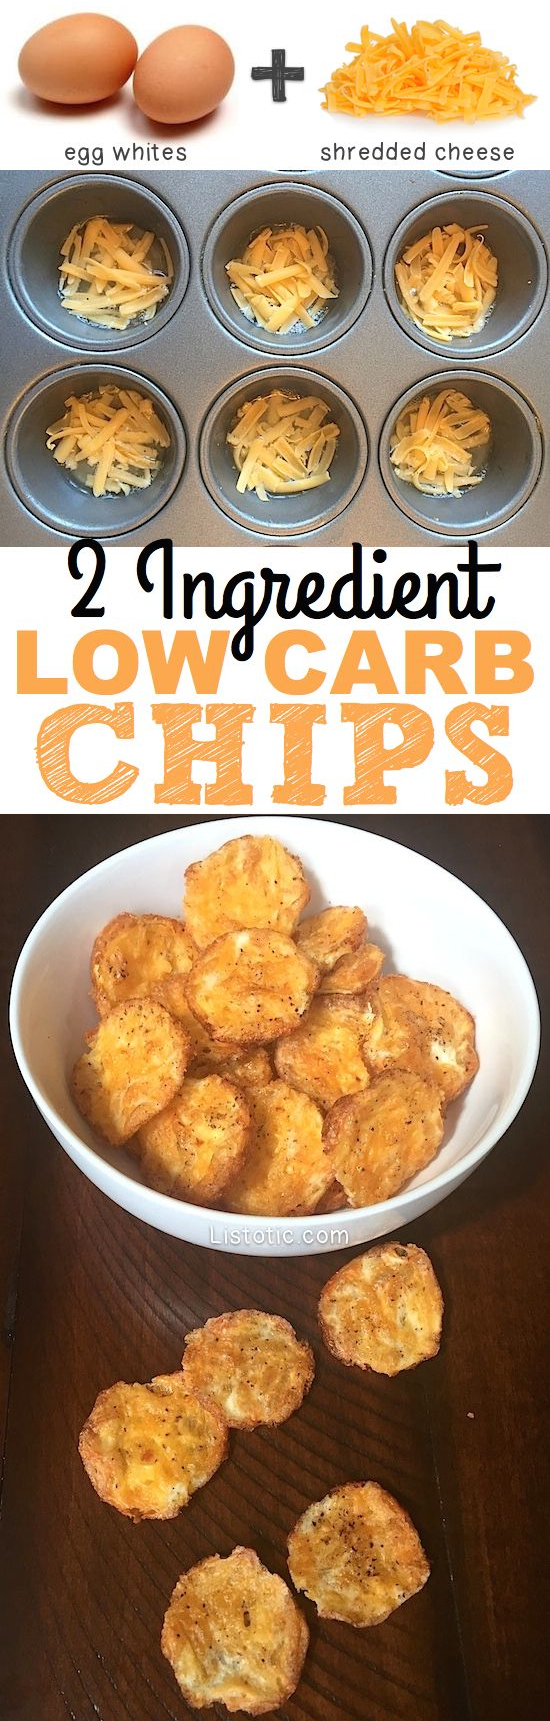 2 Ingredient Low Carb Chips